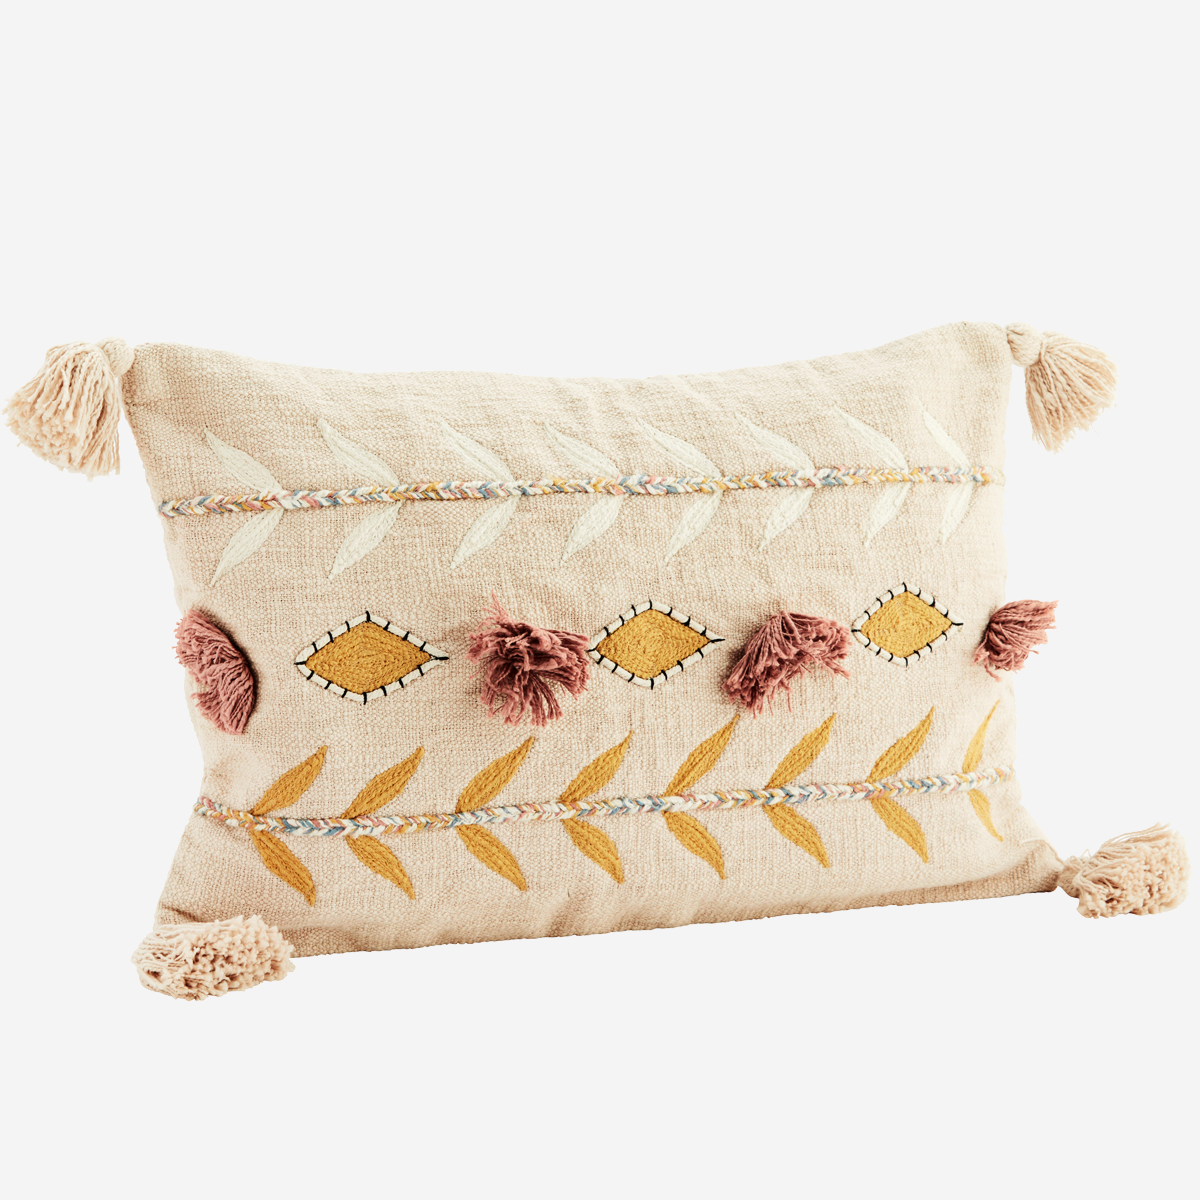 Embroidered cushion cover w/ tassels